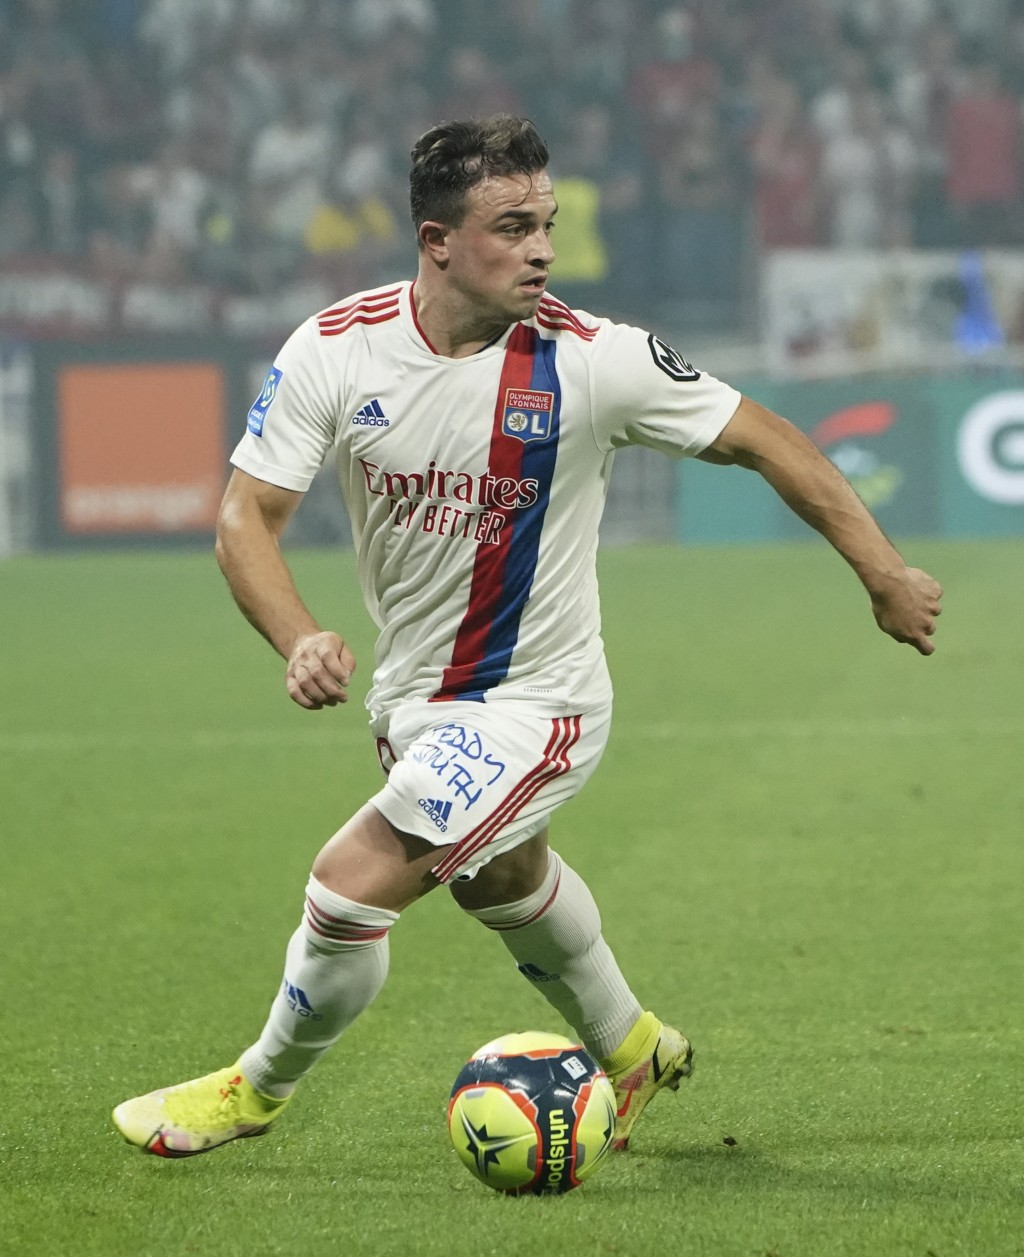 Lyon's Xherdan Shaqiri controls the ball during the French League One soccer match between Strasbourg RCSA and Olympique Lyonnais at the Groupama stad...